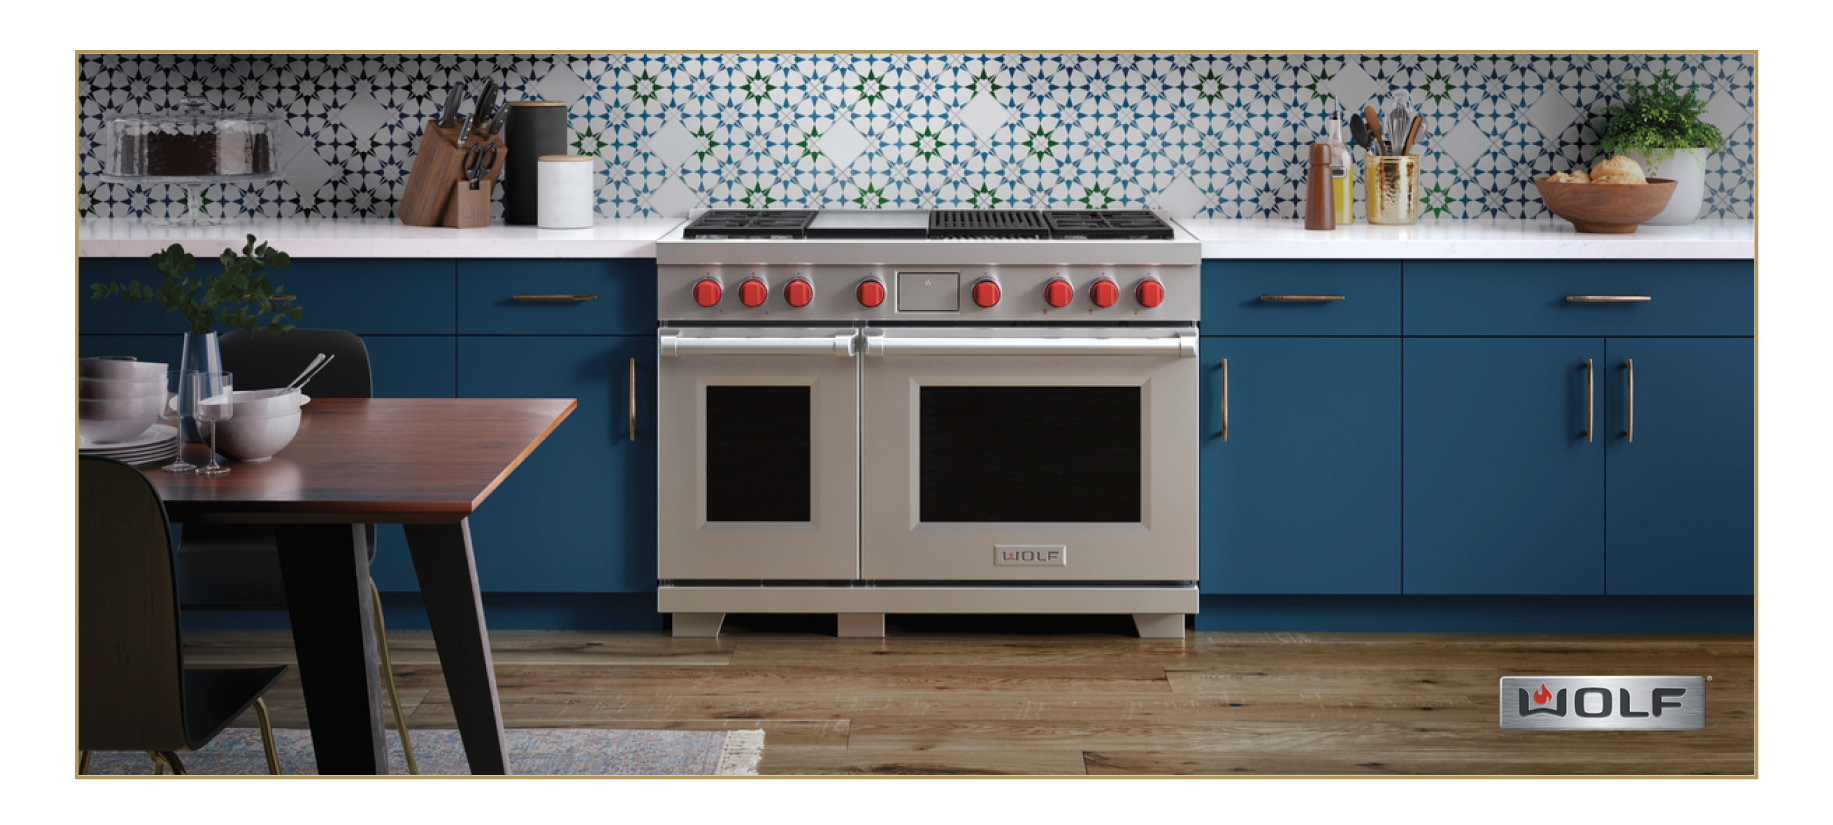 Wolf Dual Fuel Range in silver with red knobs. In the center of a blue kitchen.